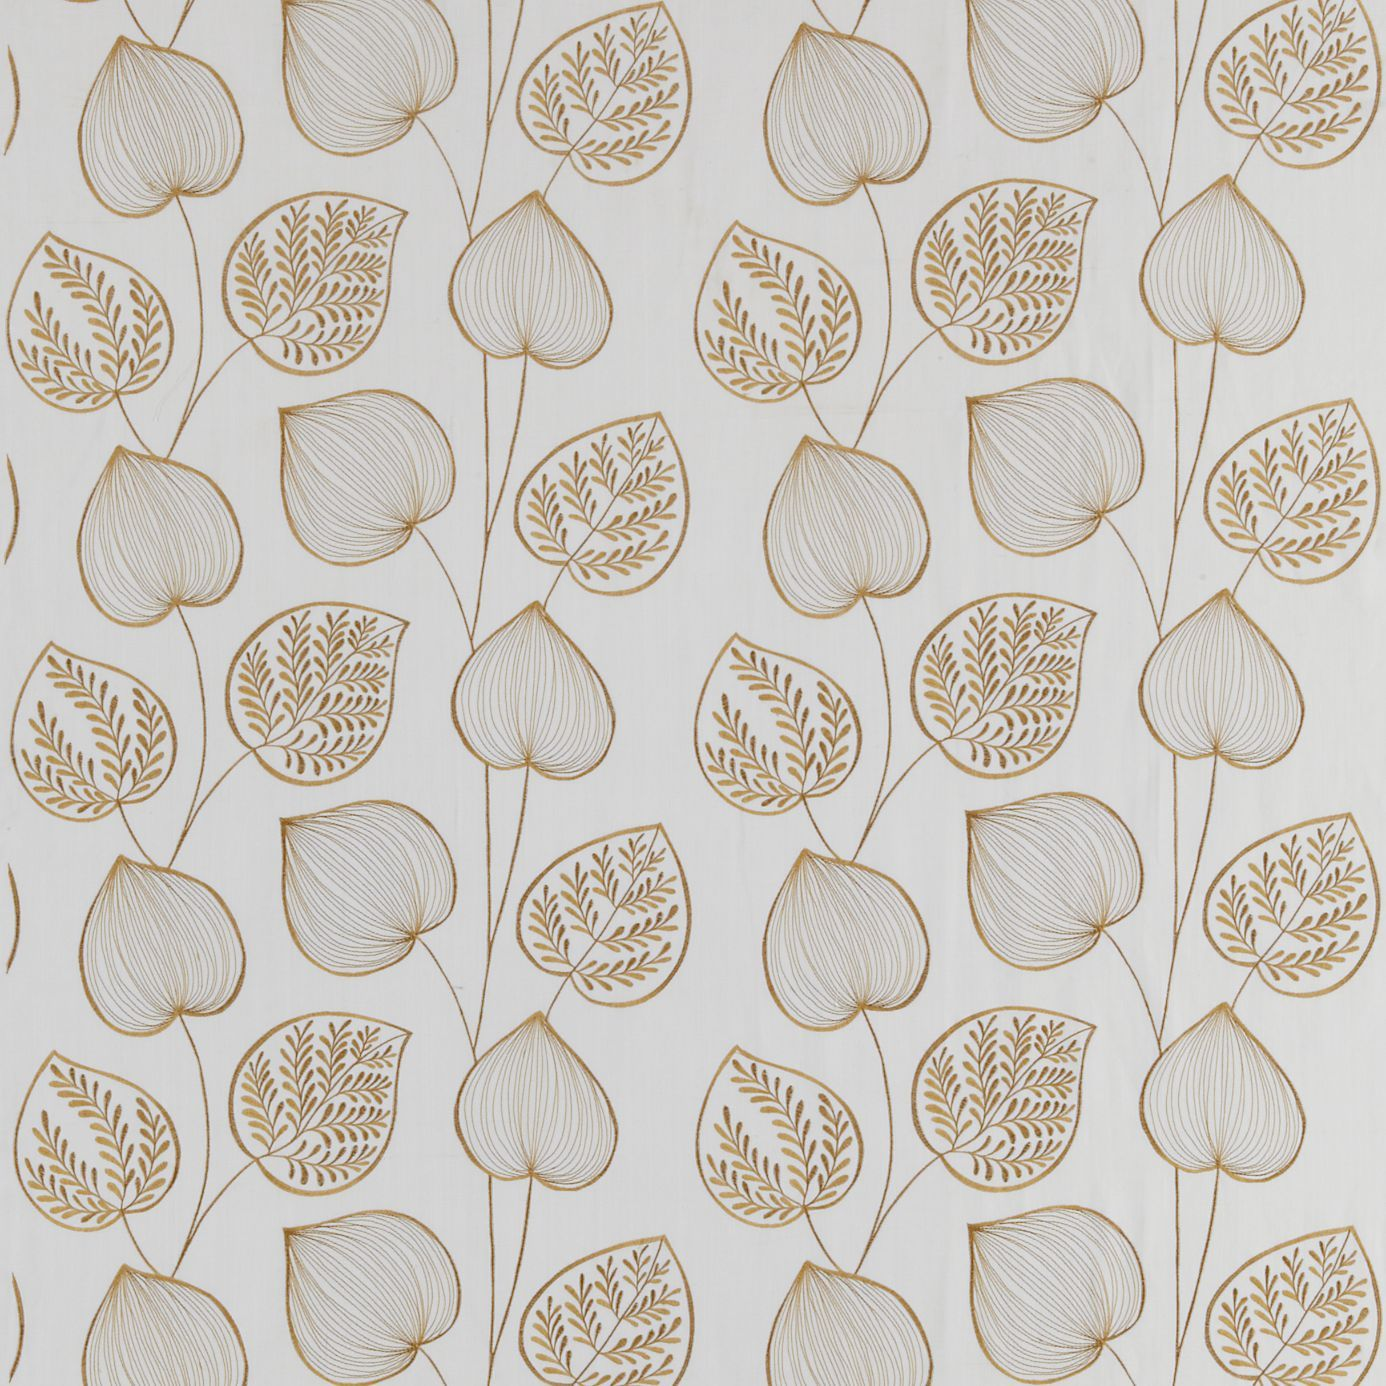 White curtain wallpaper -  Wallpaper Fabric Pattern Background Scrapbook Design The Elephant Room Illustration Wallpaper Background Pattern Pinterest Elephant Room